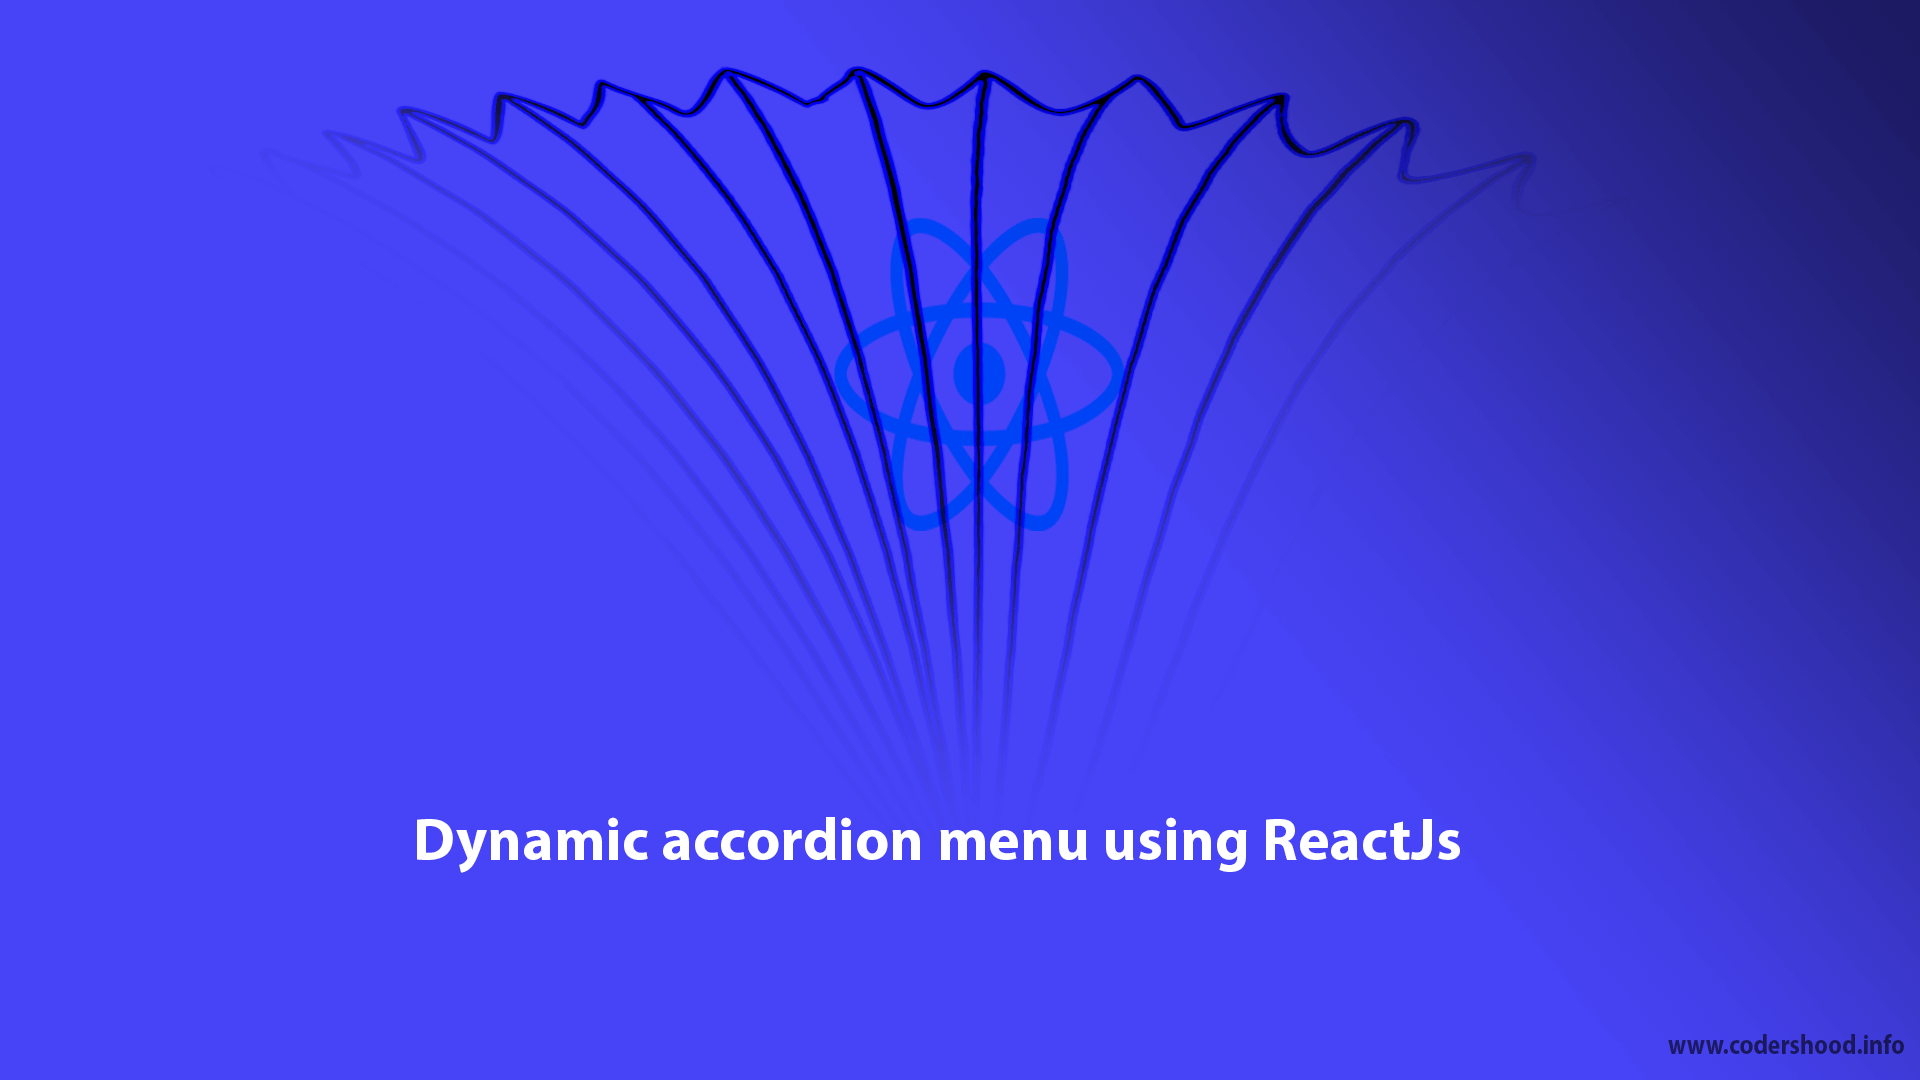 Dynamic accordion menu using ReactJs Tutorial - CodersHood